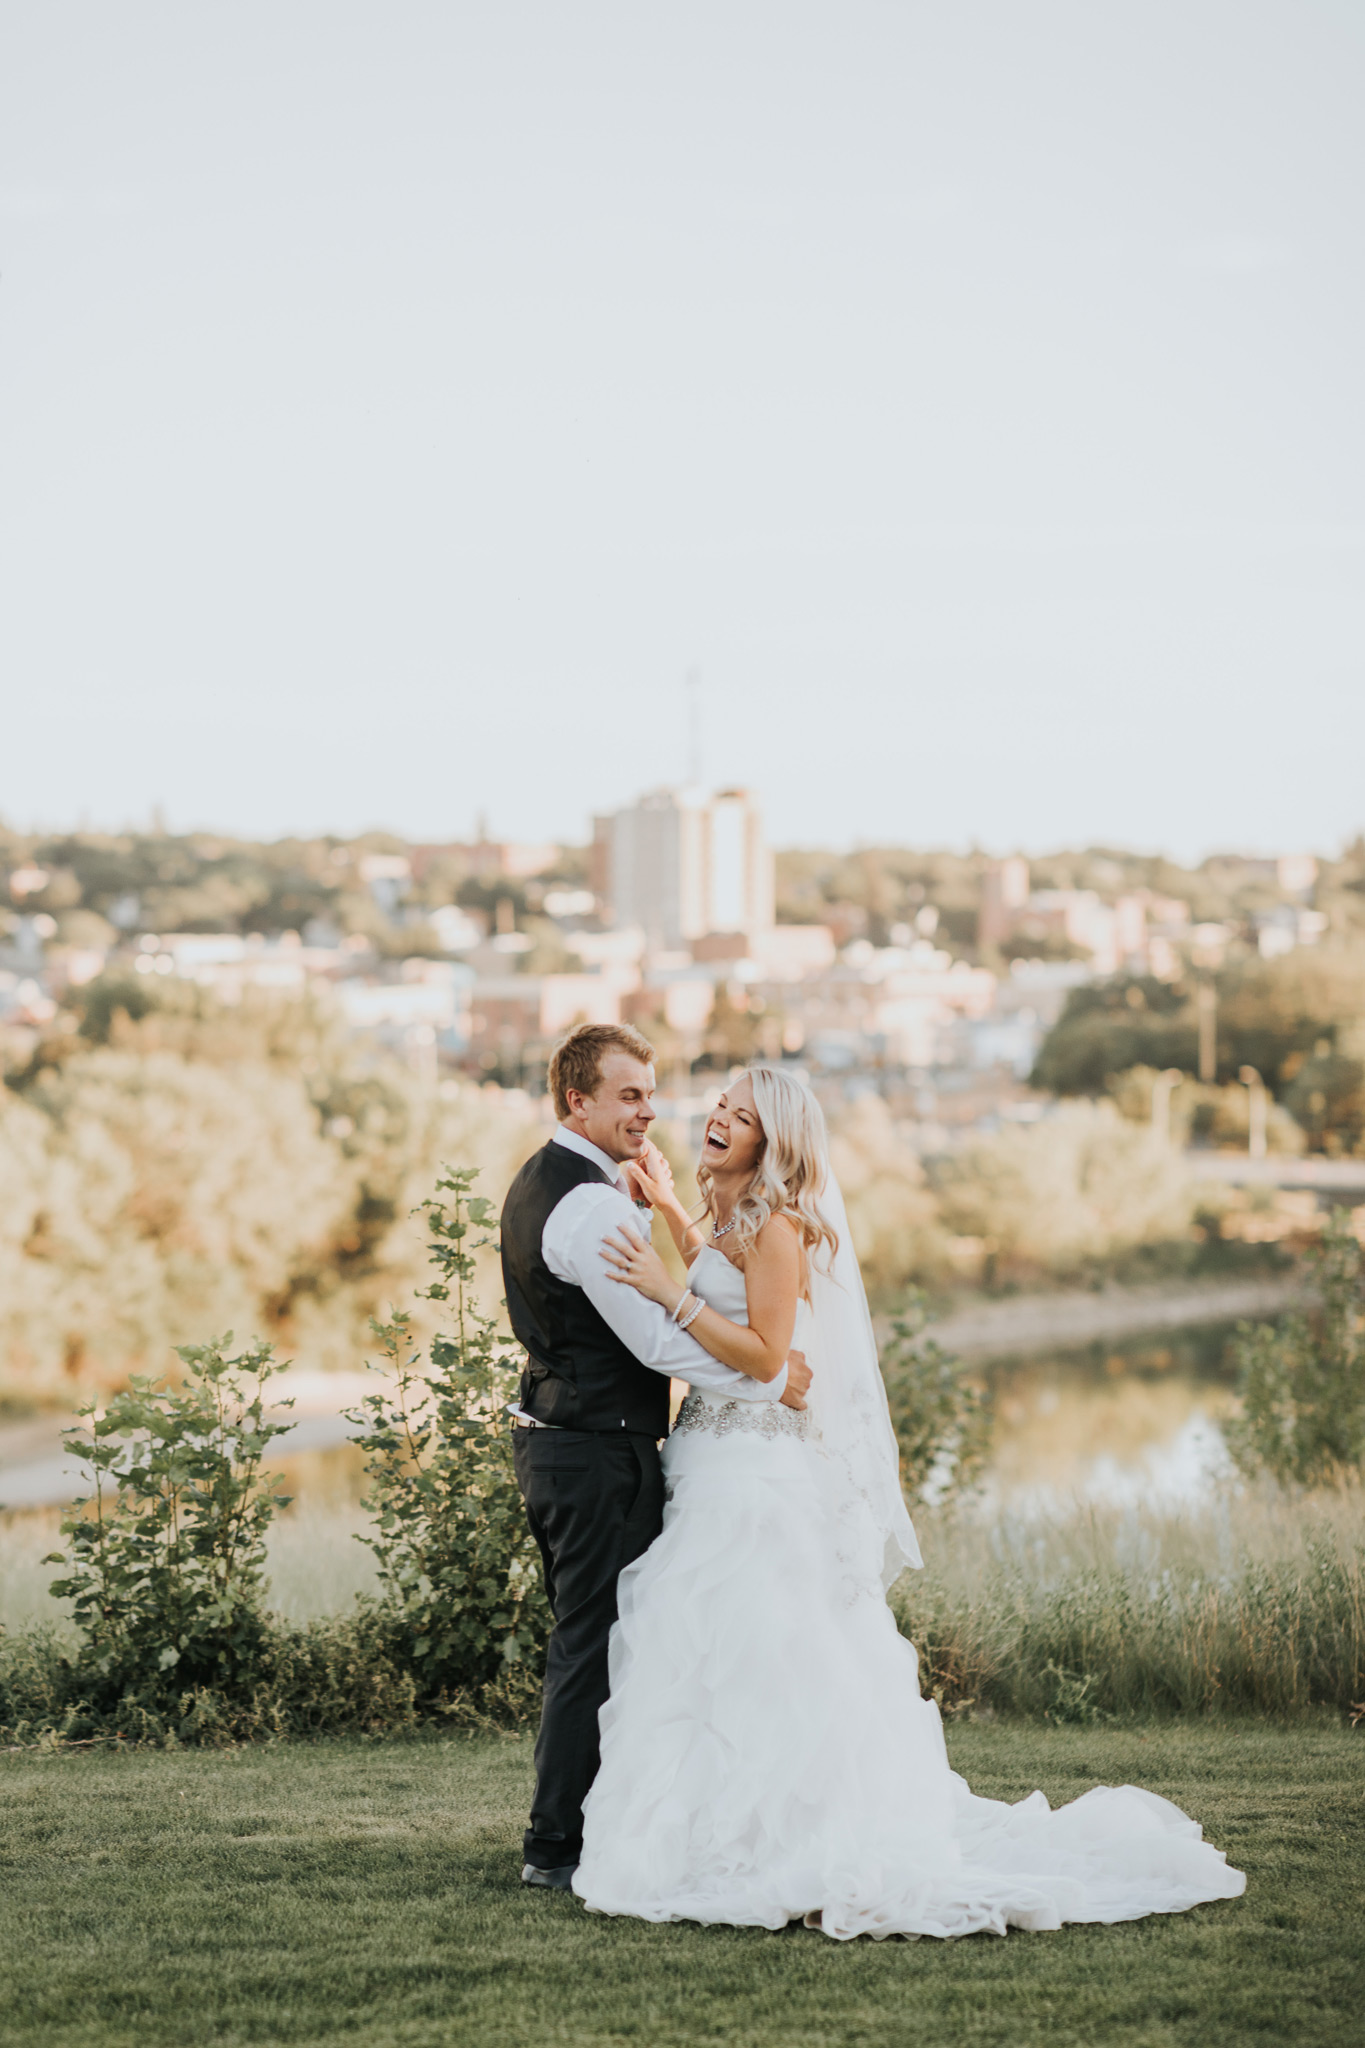 just married couple dancing and laughing view of city skyline medicine hat alberta